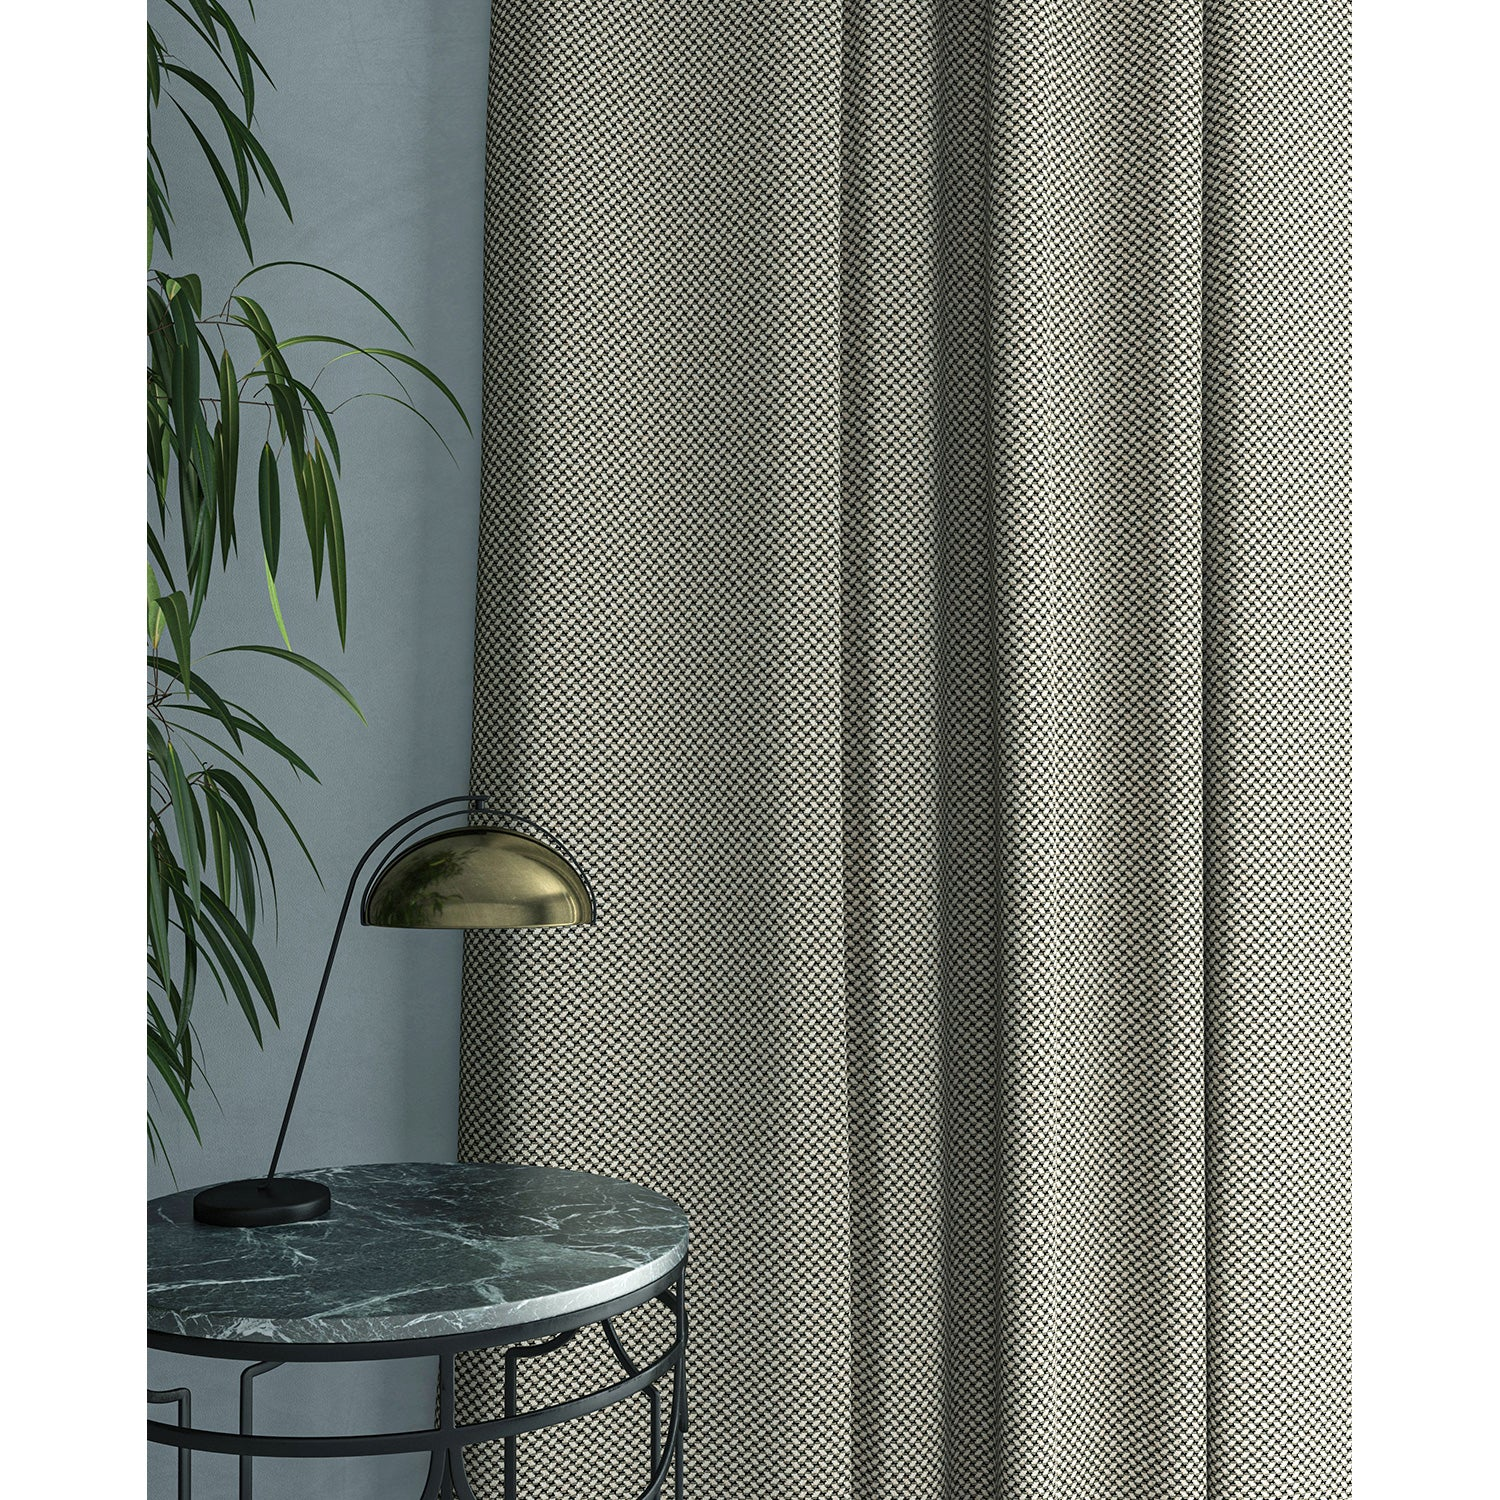 Curtain in beautiful dark grey stain resistant geometric weave fabric